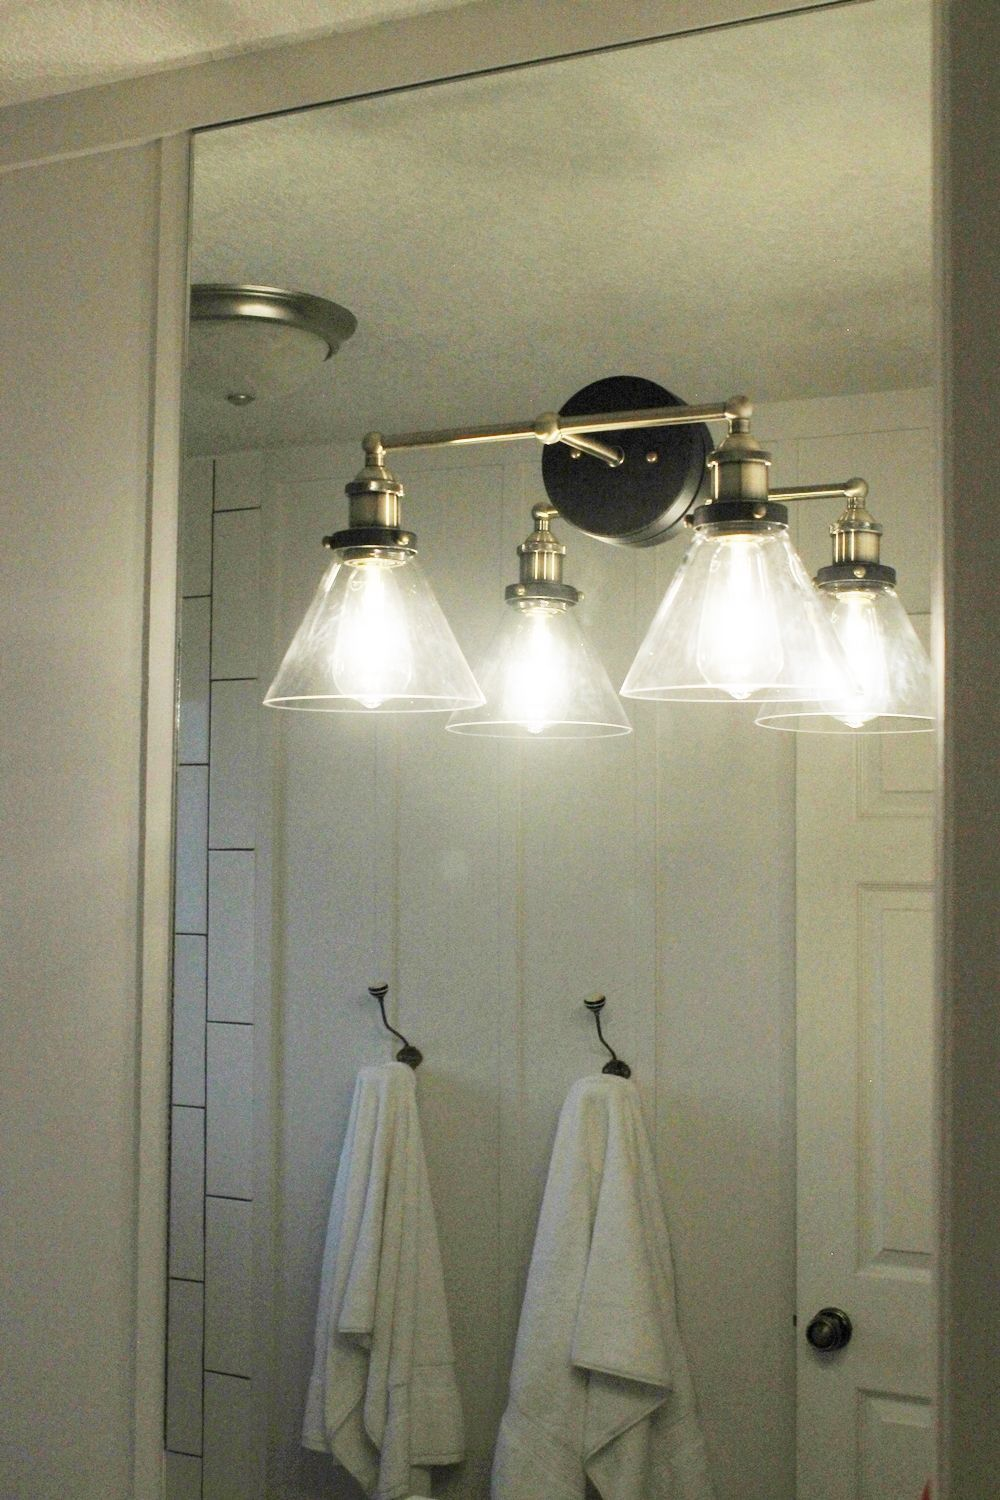 How to mount a light on top of a mirror bathroom vanity add lighting fixture on mirror mozeypictures Image collections